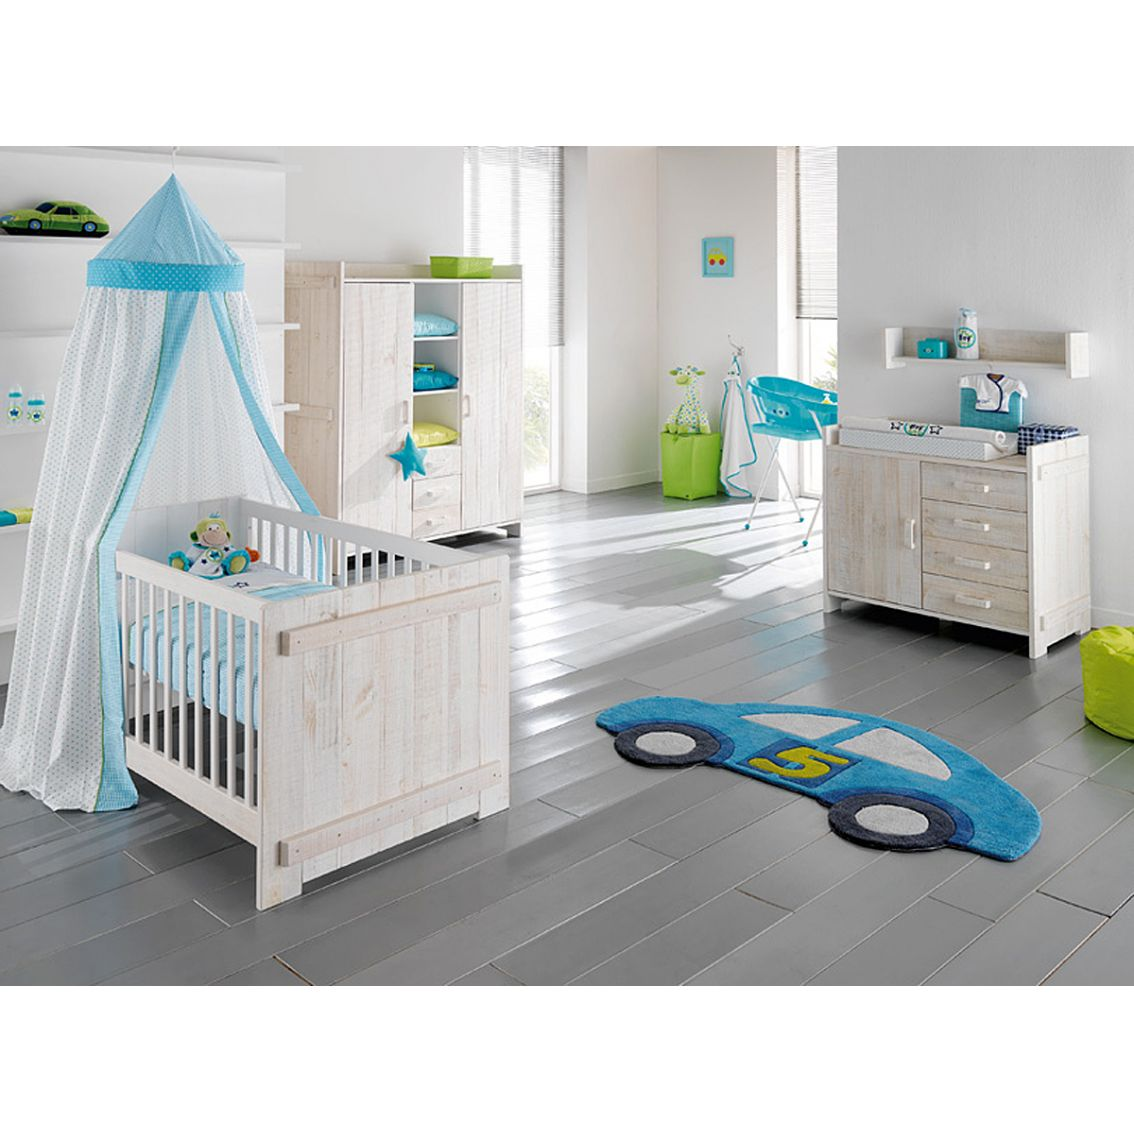 Nursery Furniture Decoration Designs